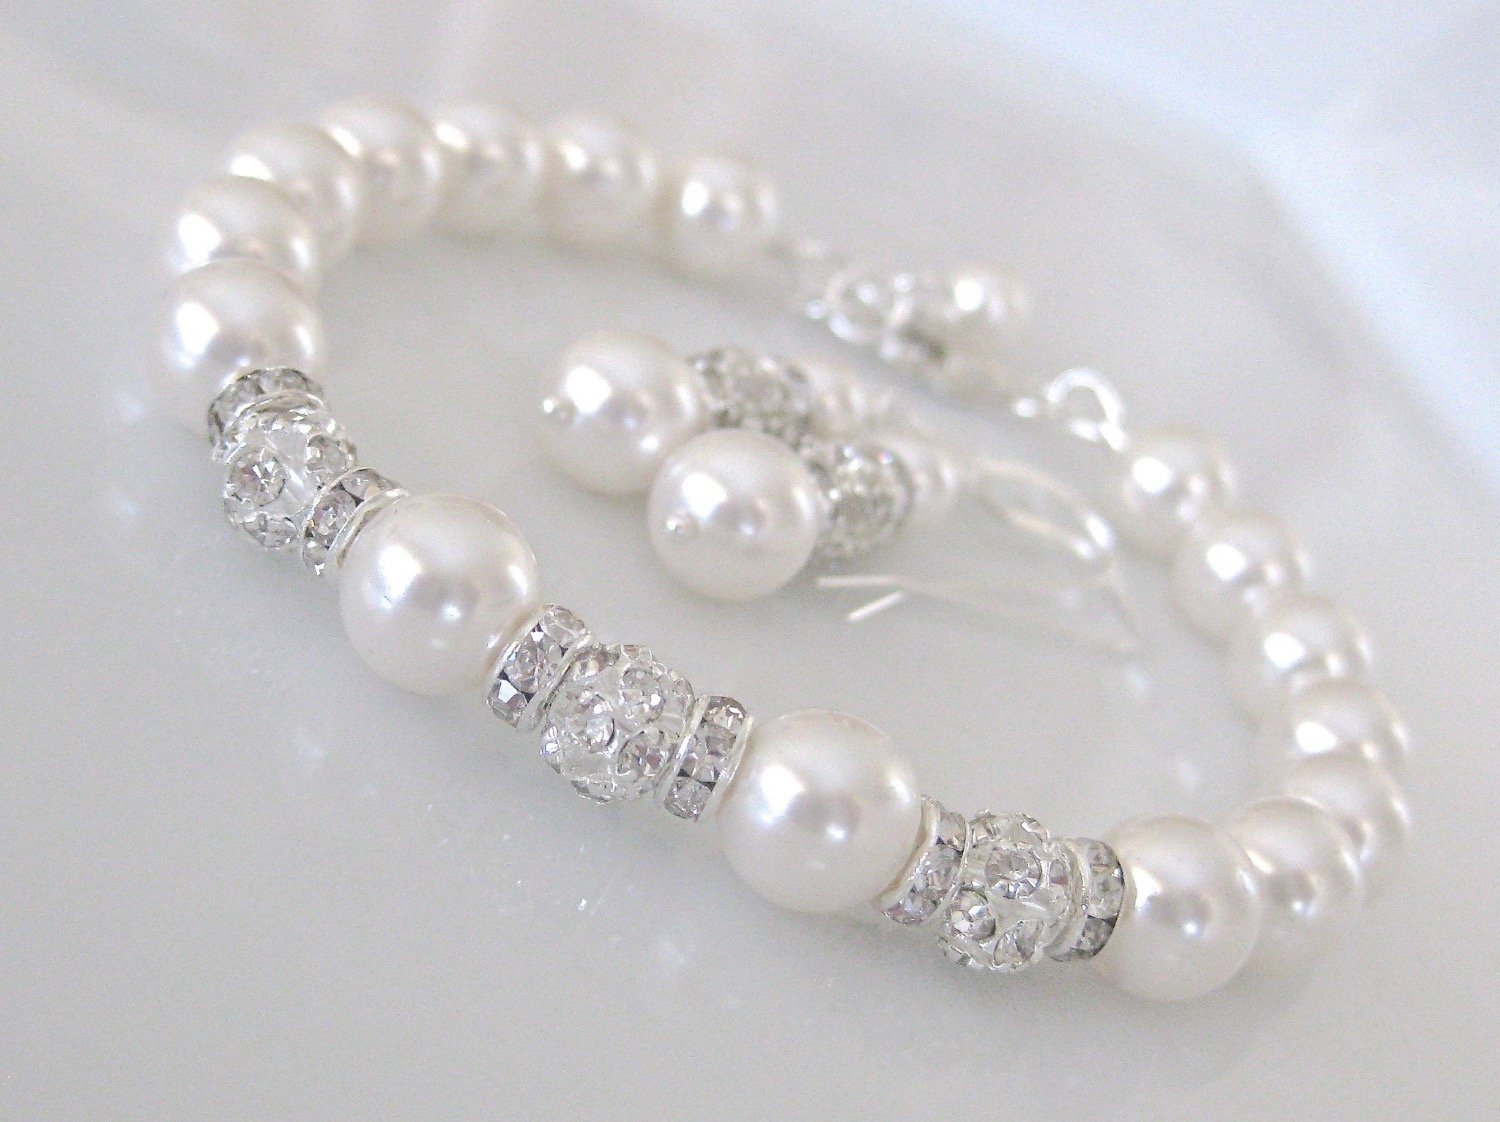 Bridal Jewelry Wedding Pearl Bracelet and Earring Set - Clairesbridal - 4